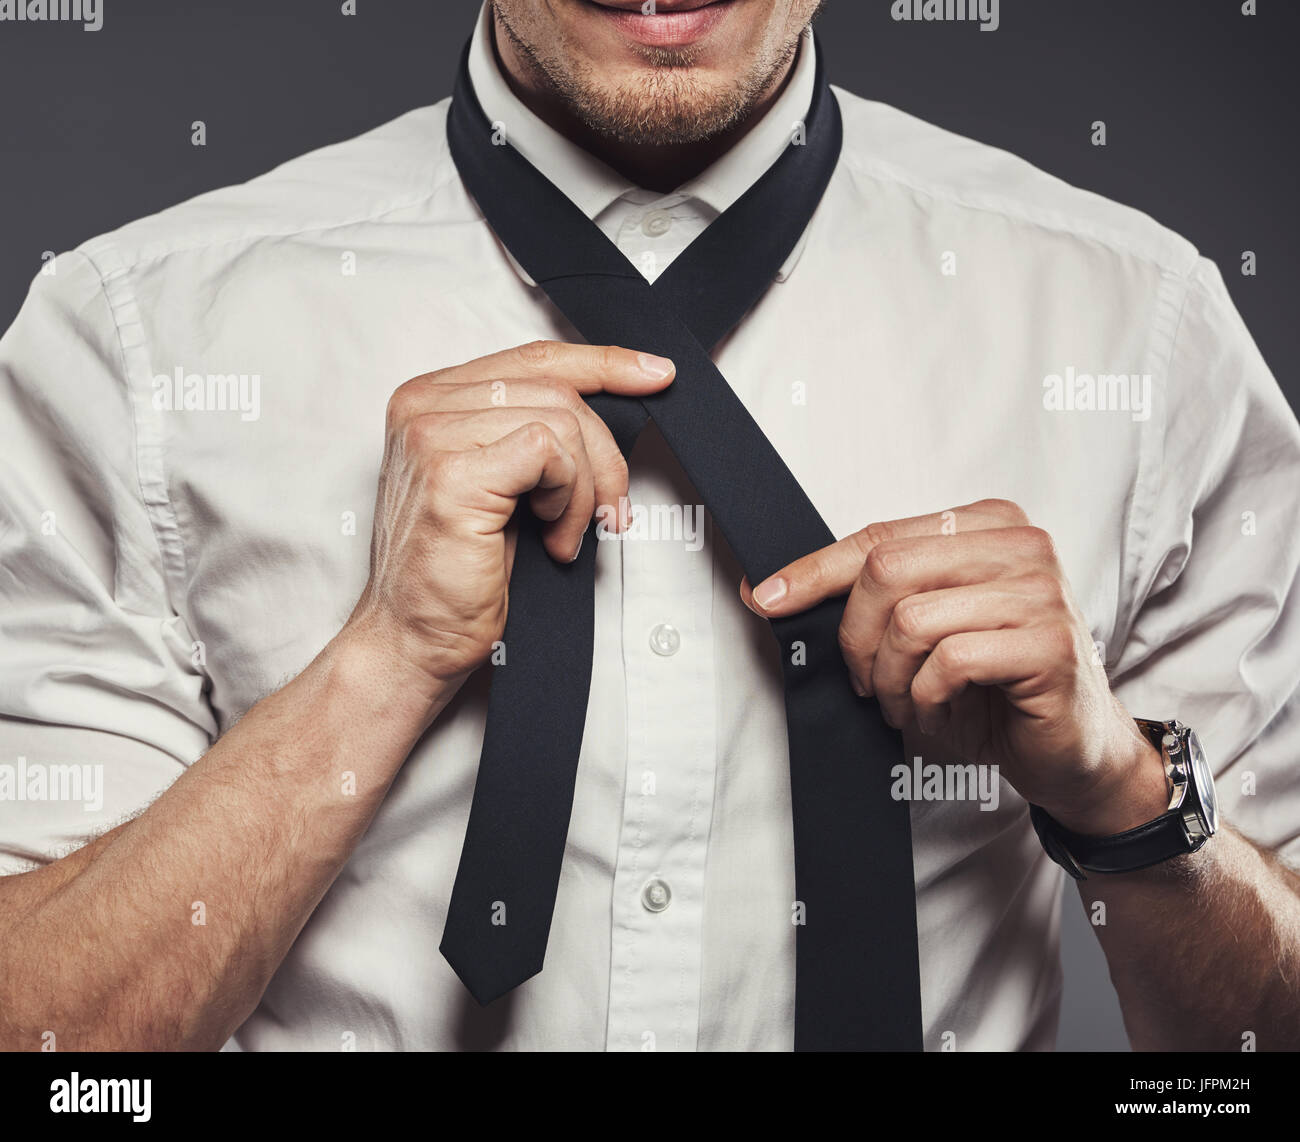 Closeup of a young businessman in a shirt standing in a studio against a grey background tying his necktie - Stock Image